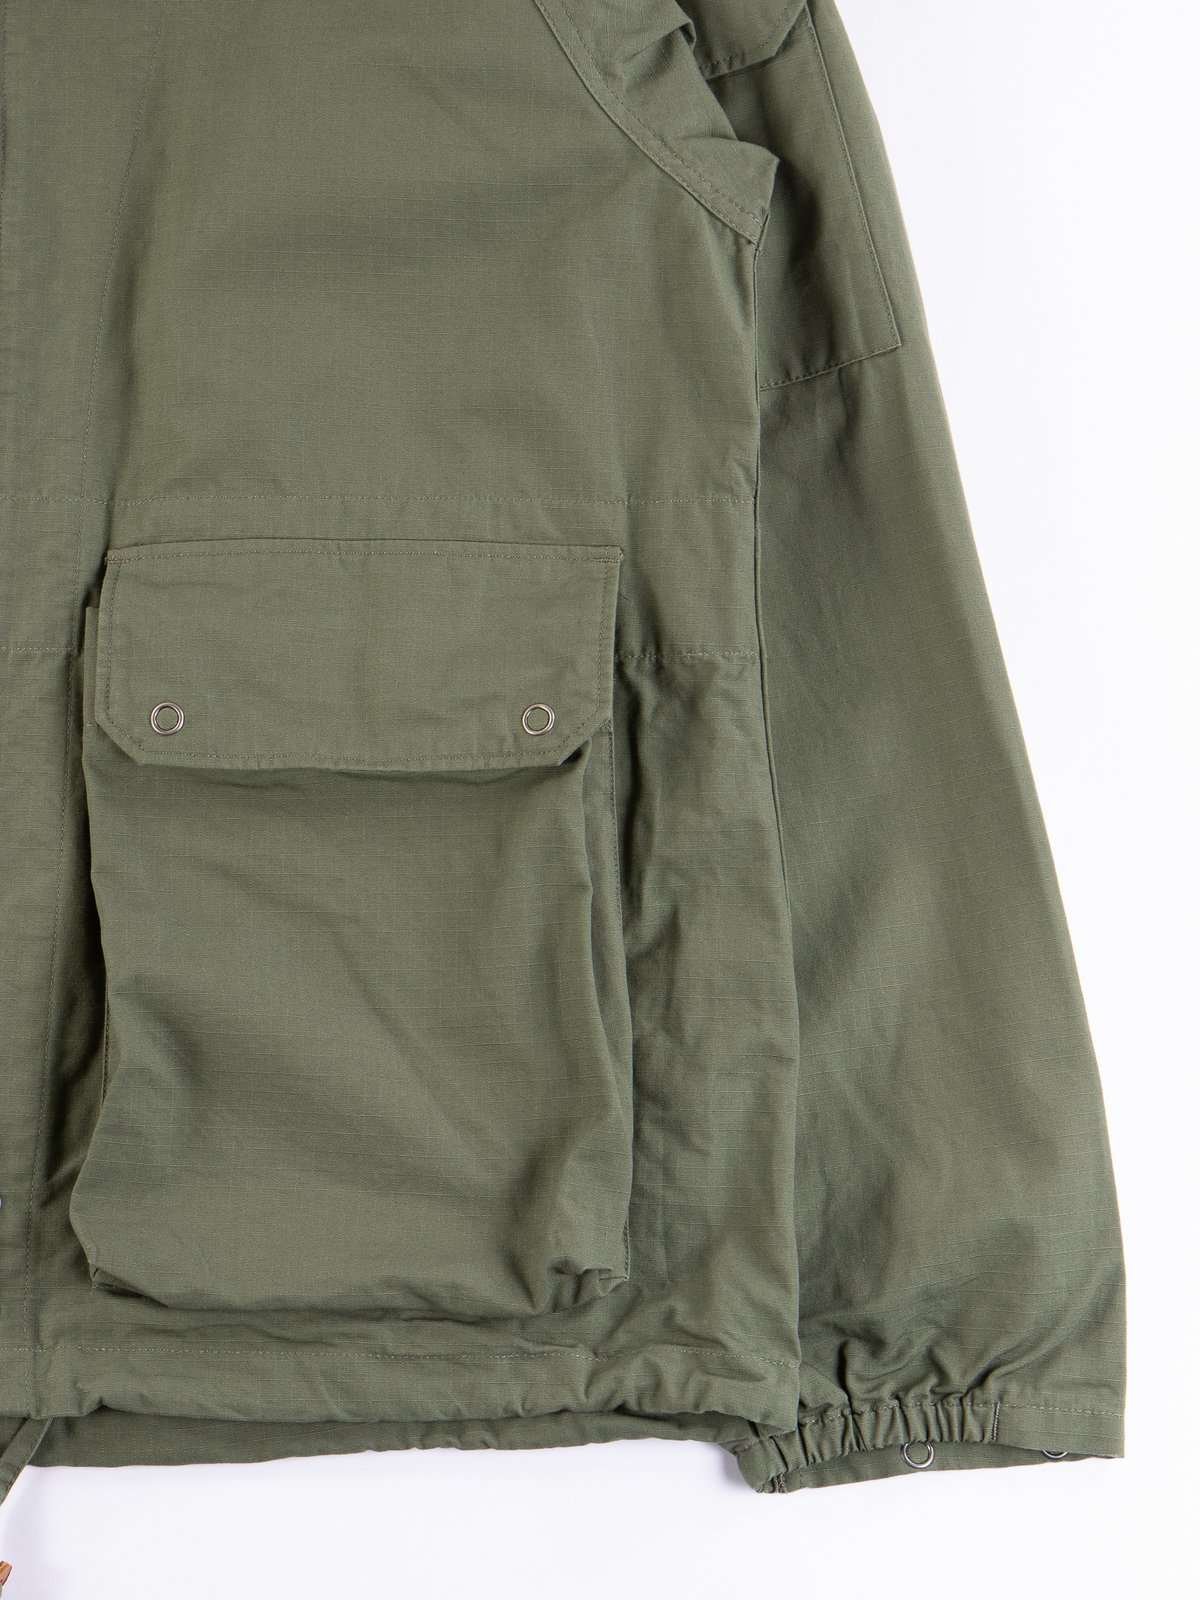 Olive Cotton Ripstop Atlantic Parka - Image 4